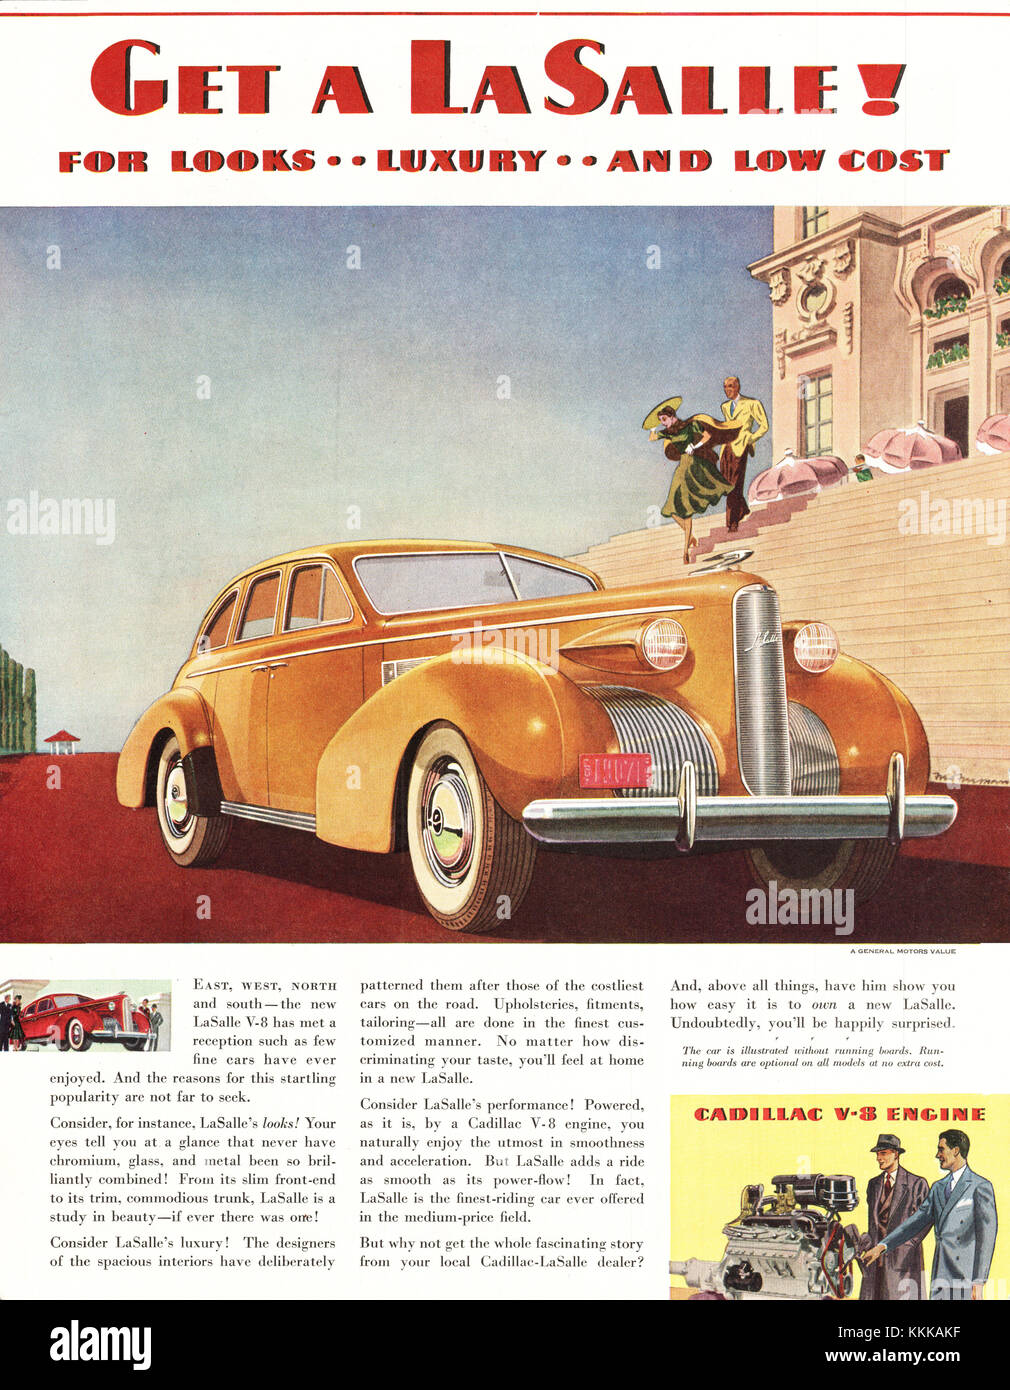 1938 U.S. Magazine LaSalle Car Advert Stock Photo: 166997251 - Alamy